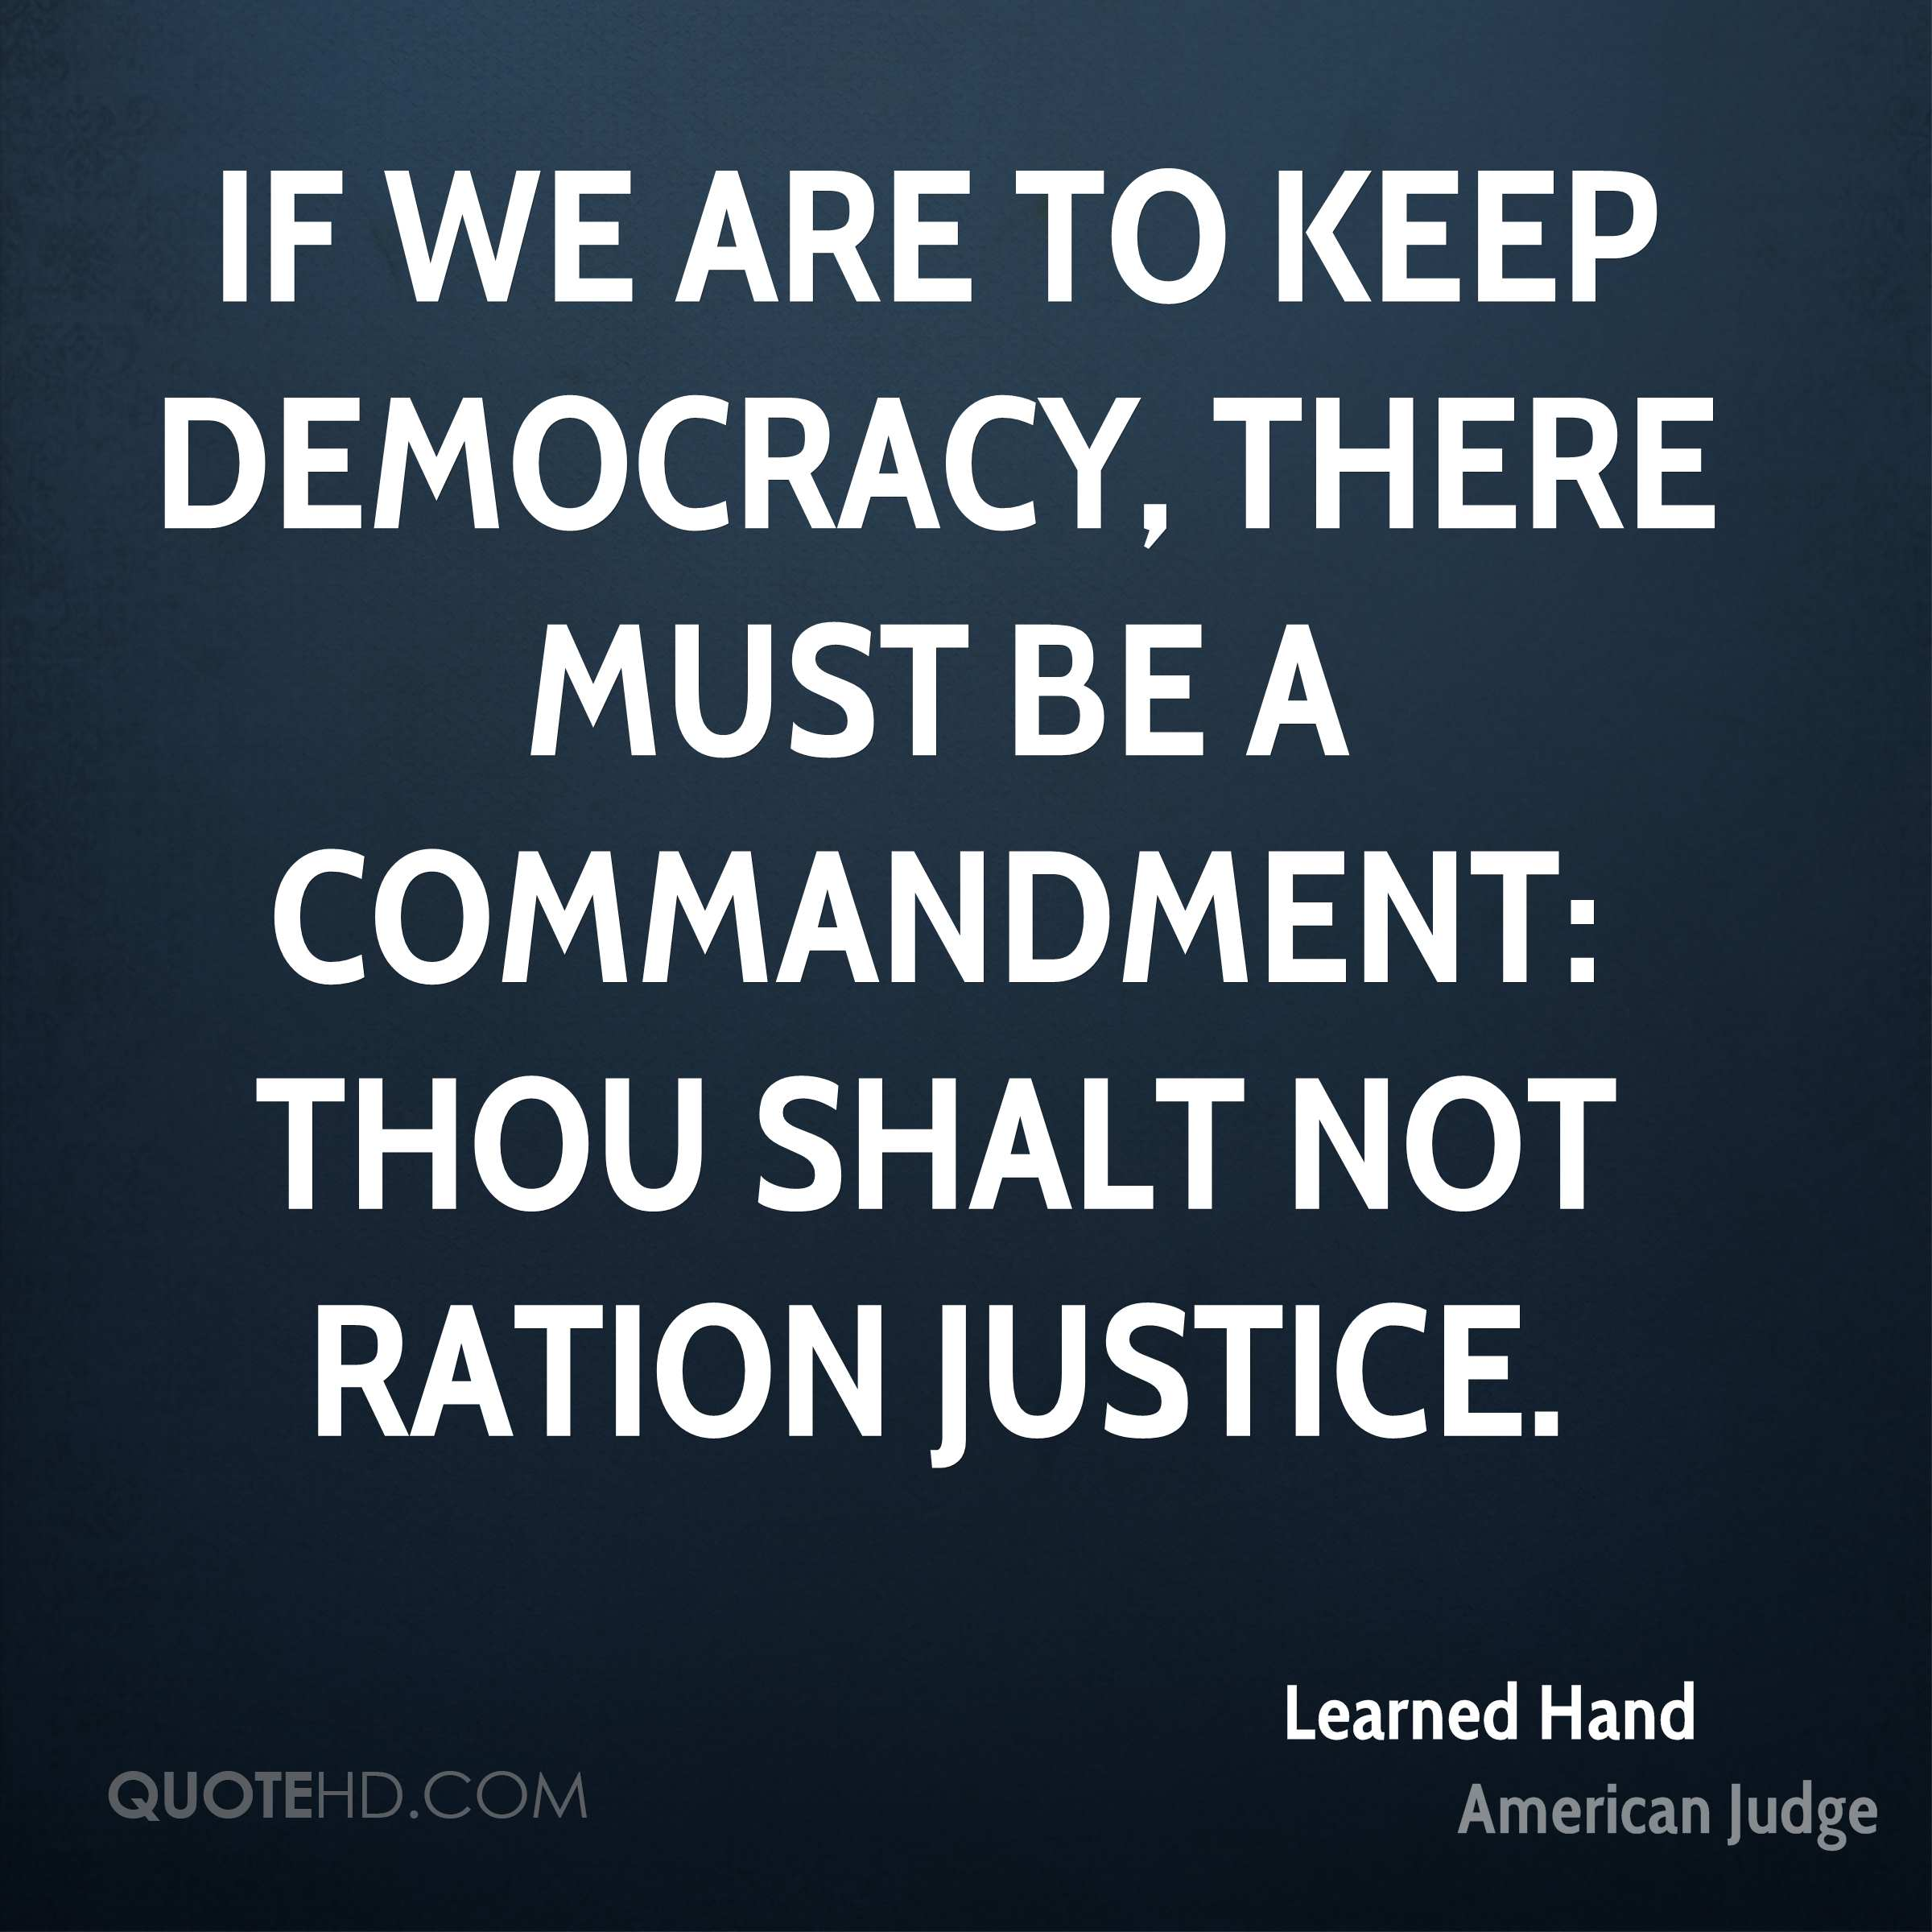 If we are to keep democracy, there must be a commandment: Thou shalt not ration justice.